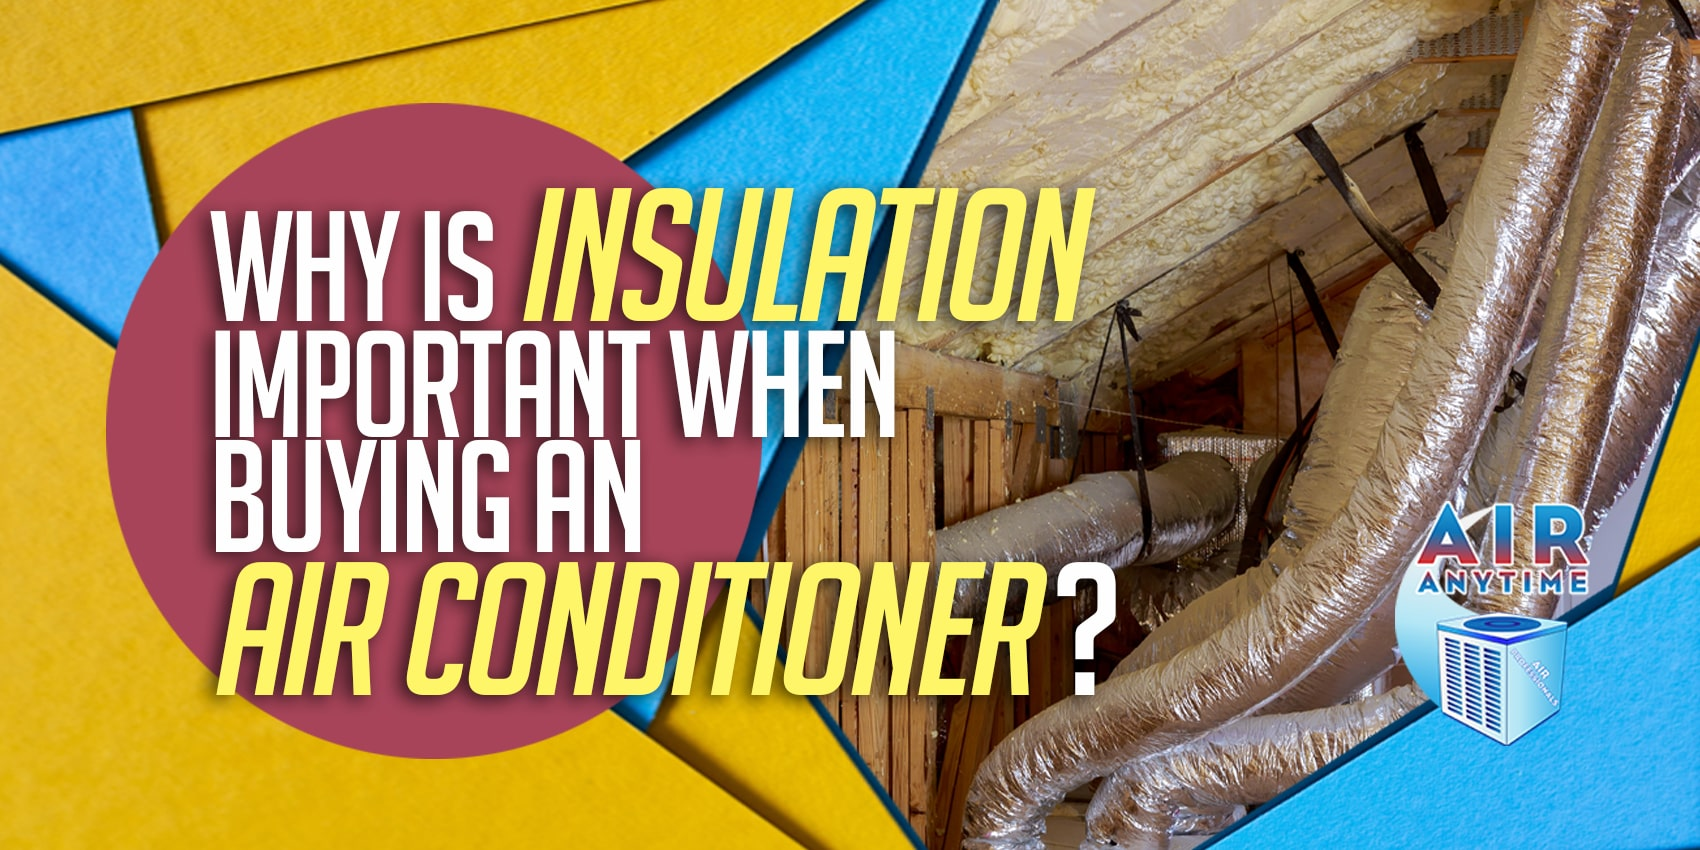 Why Is Insulation Important When Buying an Air Conditioner?